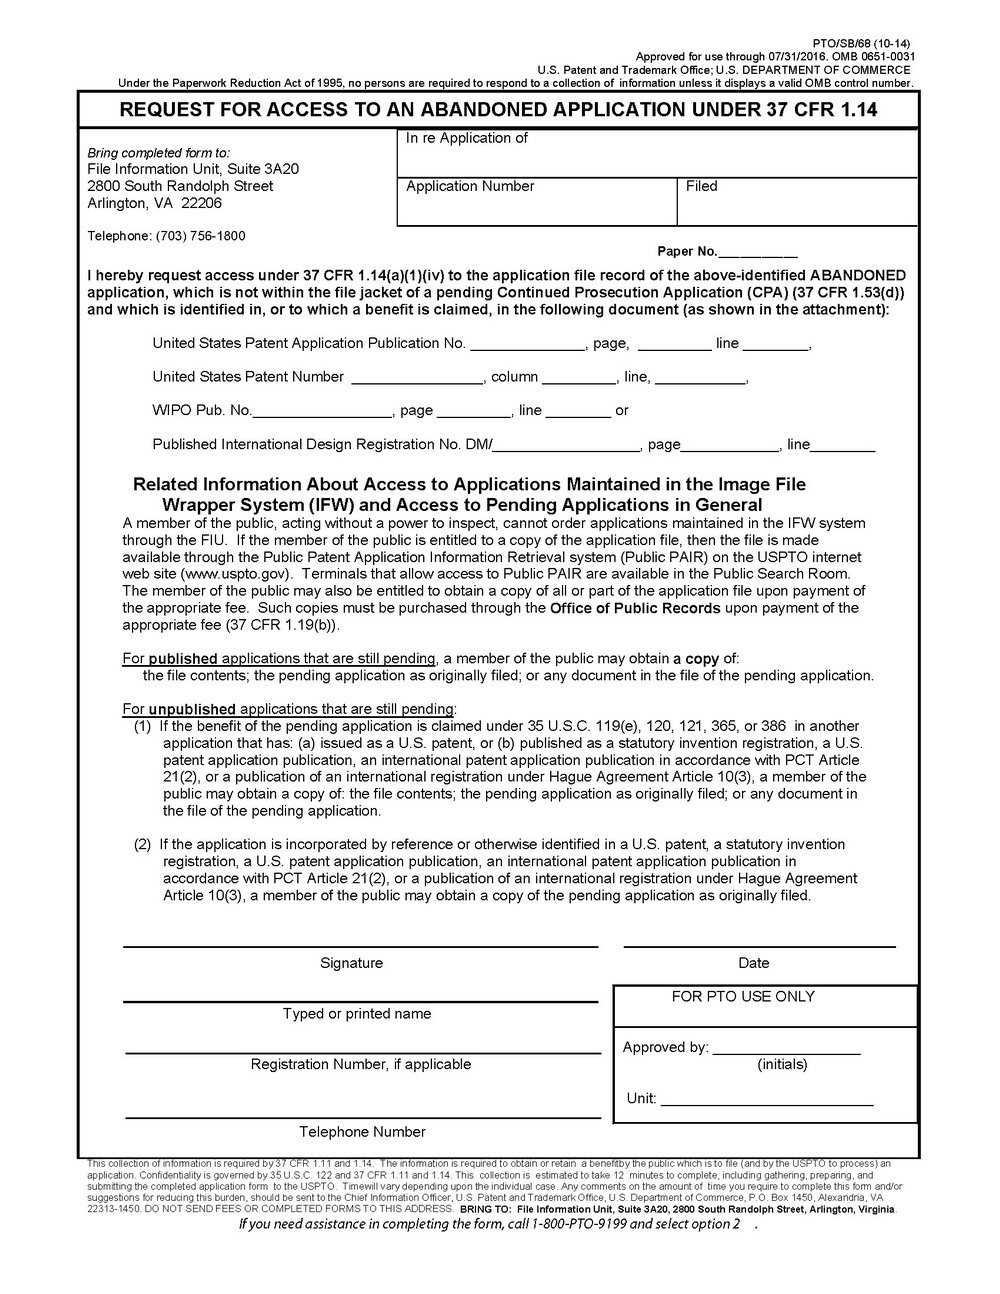 Provisional Patent Application Form Pdf